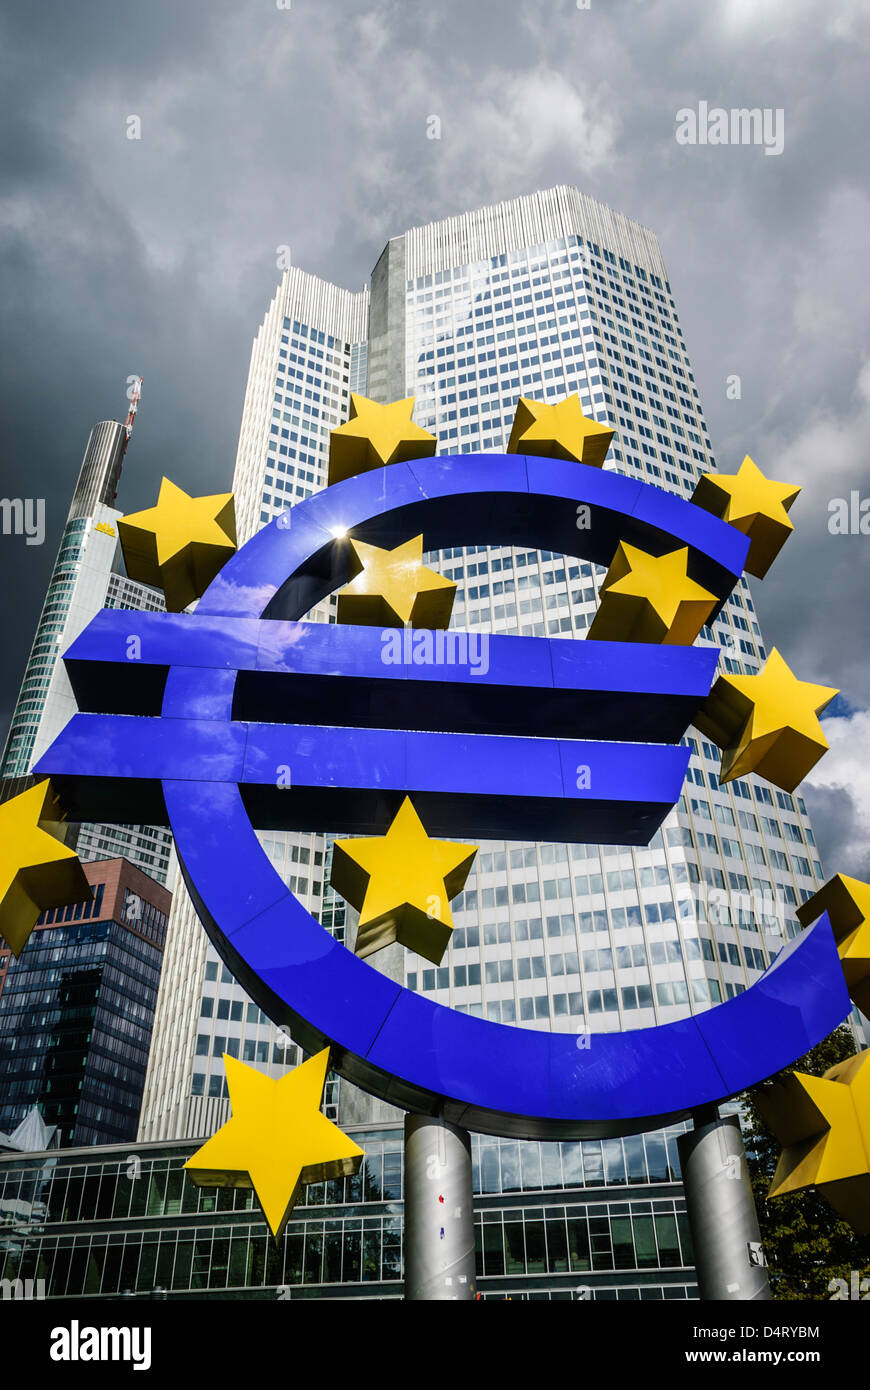 Euro symbol in front of the European Central Bank, Frankfurt, Germany, Europe - Stock Image